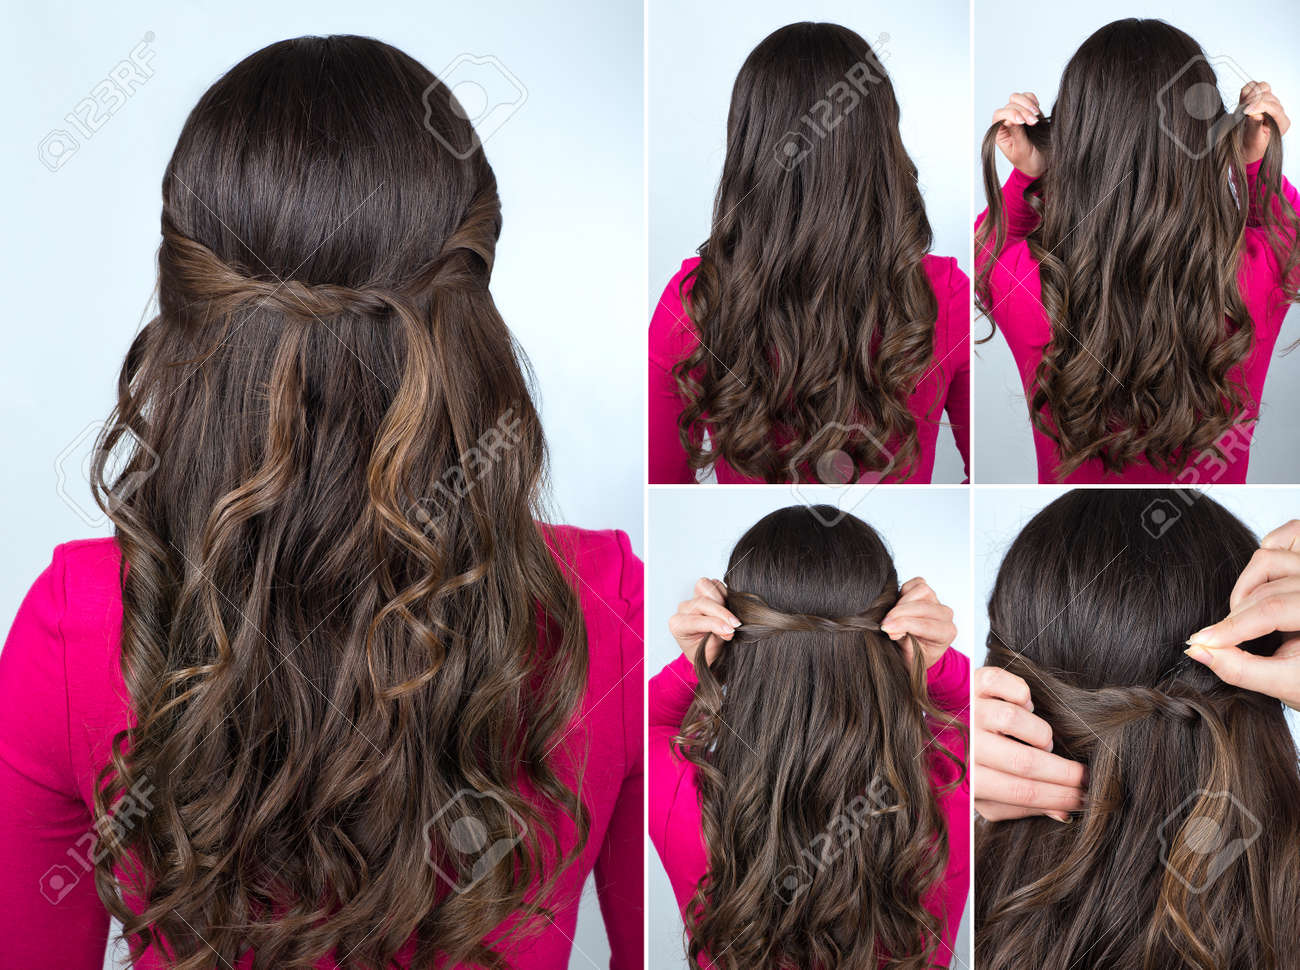 Simple Knotted Hairstyle On Curly Hair Tutorial Hairstyle For